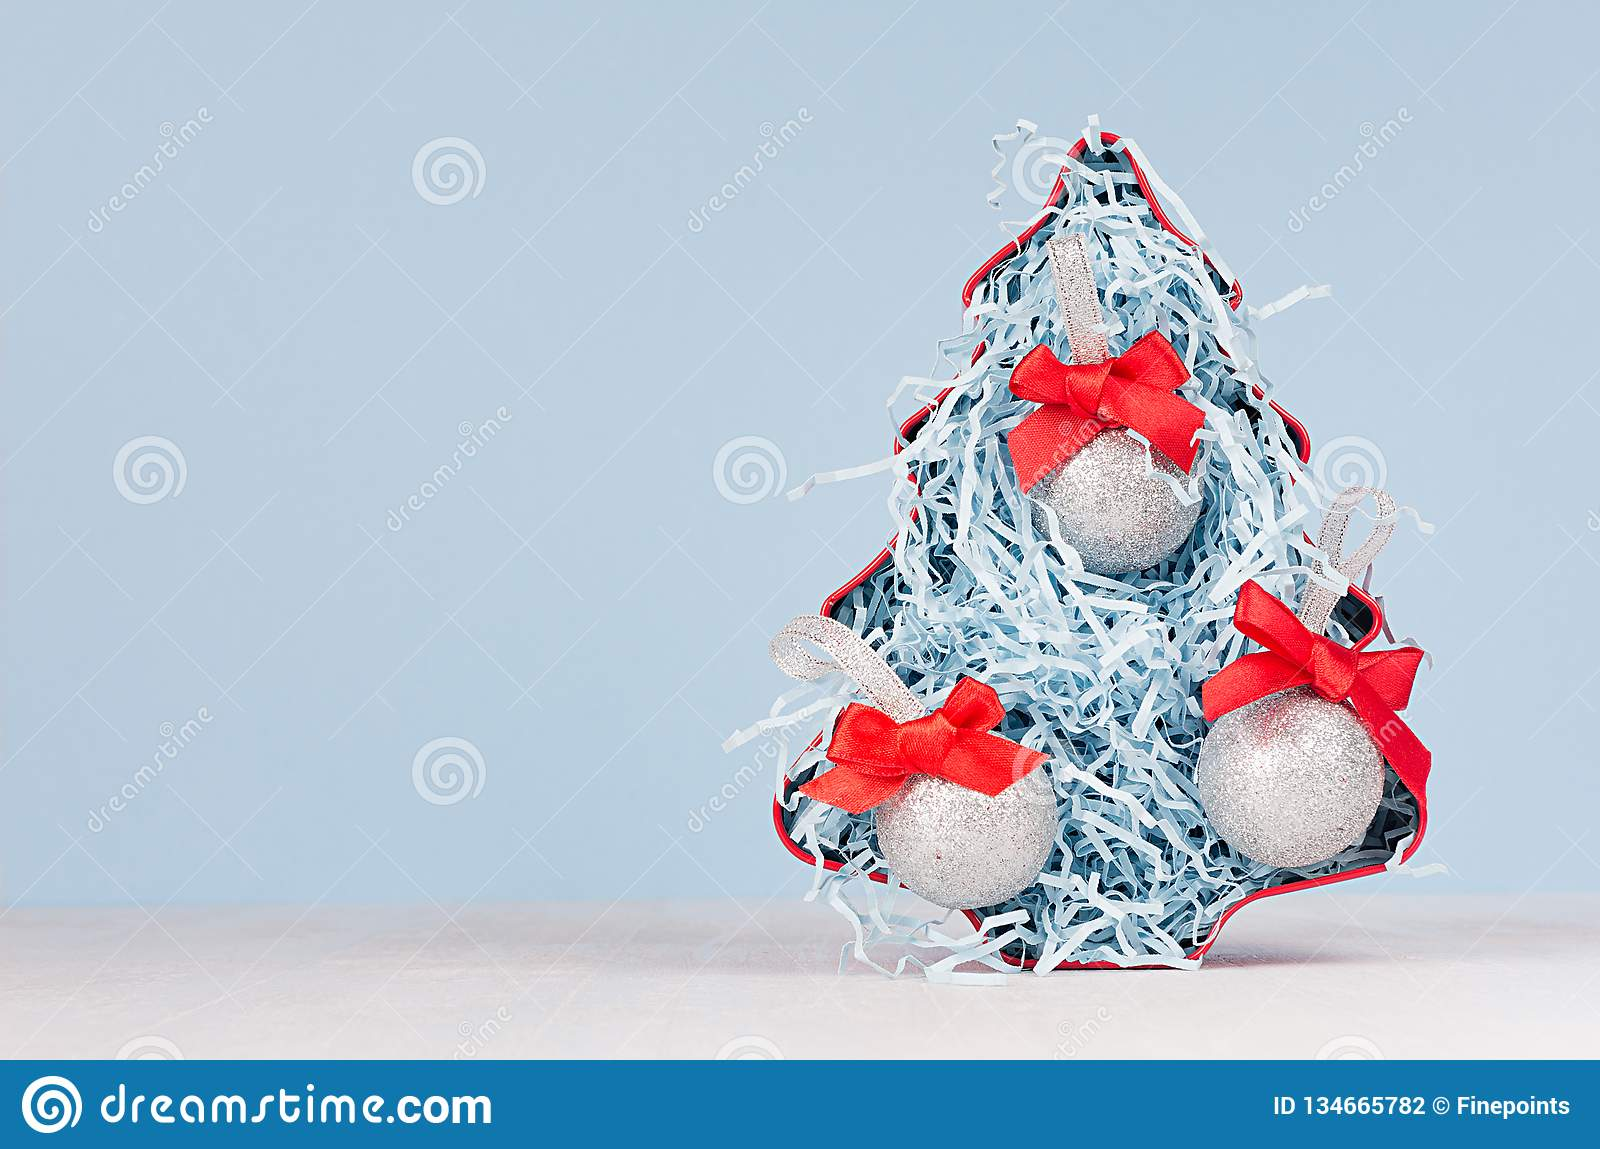 Bright christmas tree in blue and red color with silver glittering balls on white wood board and blue pastel wall, copy space.